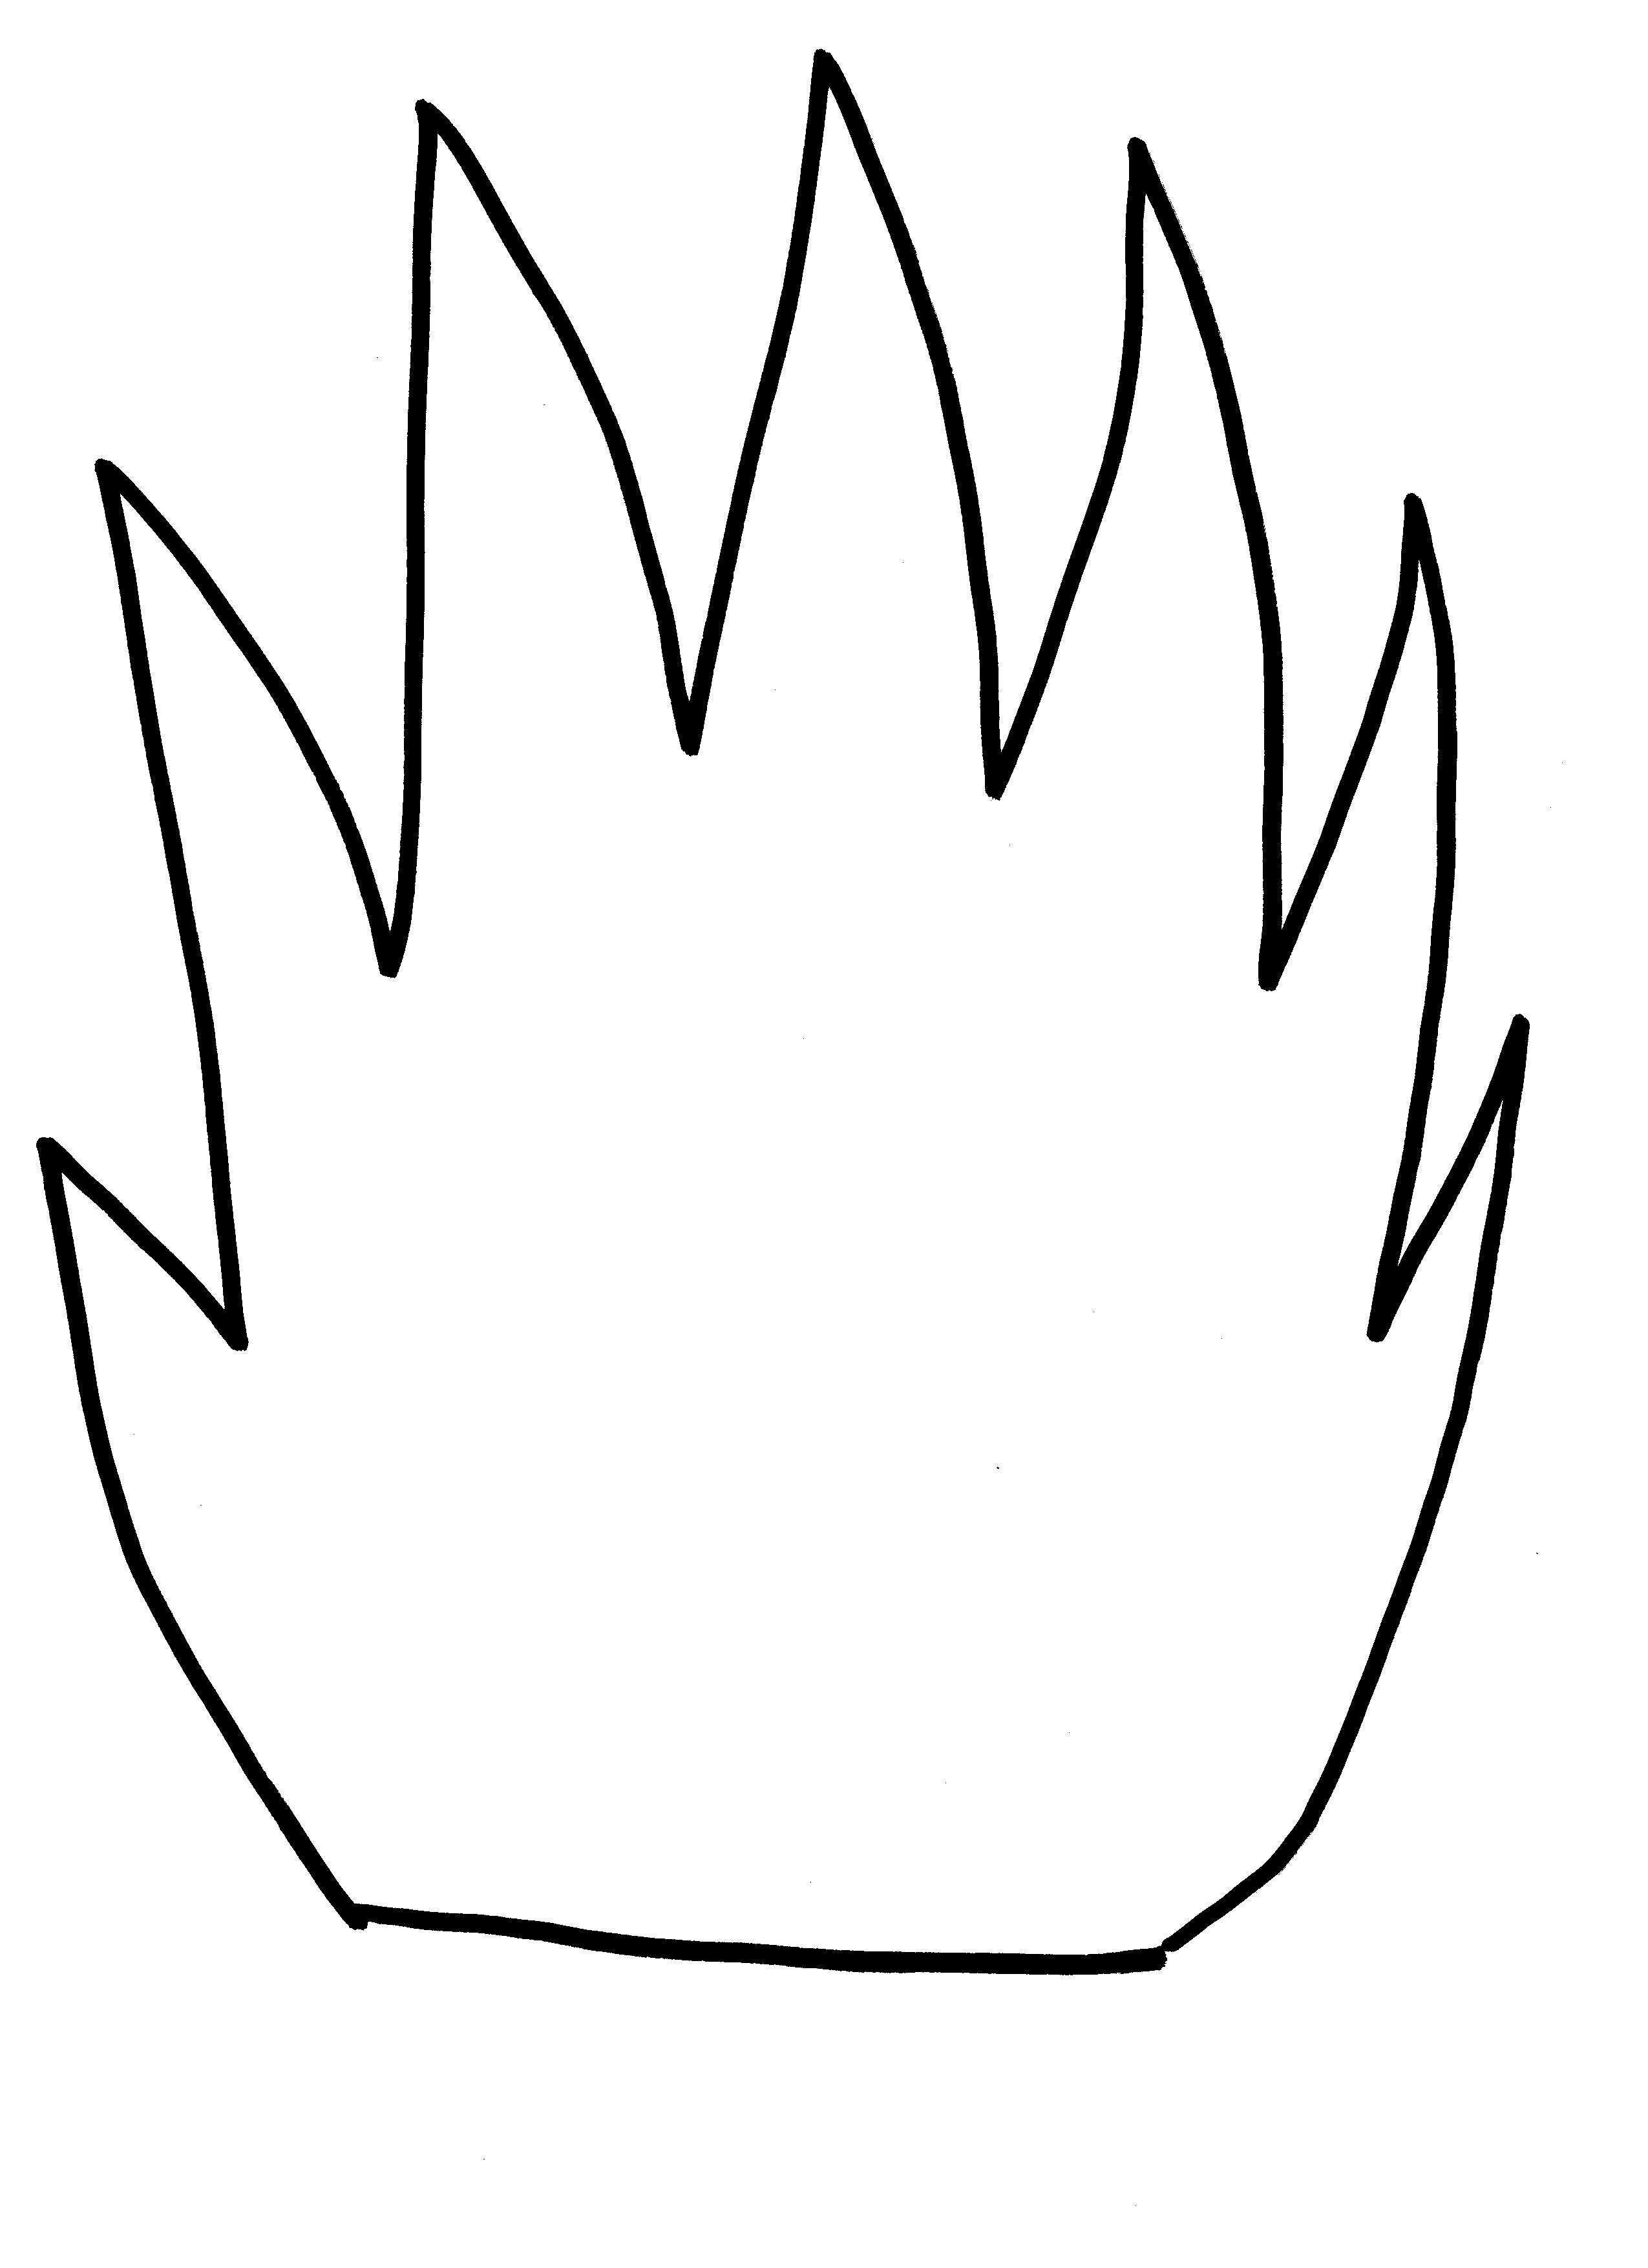 Flames clipart flame outline Template  on Printout Flame